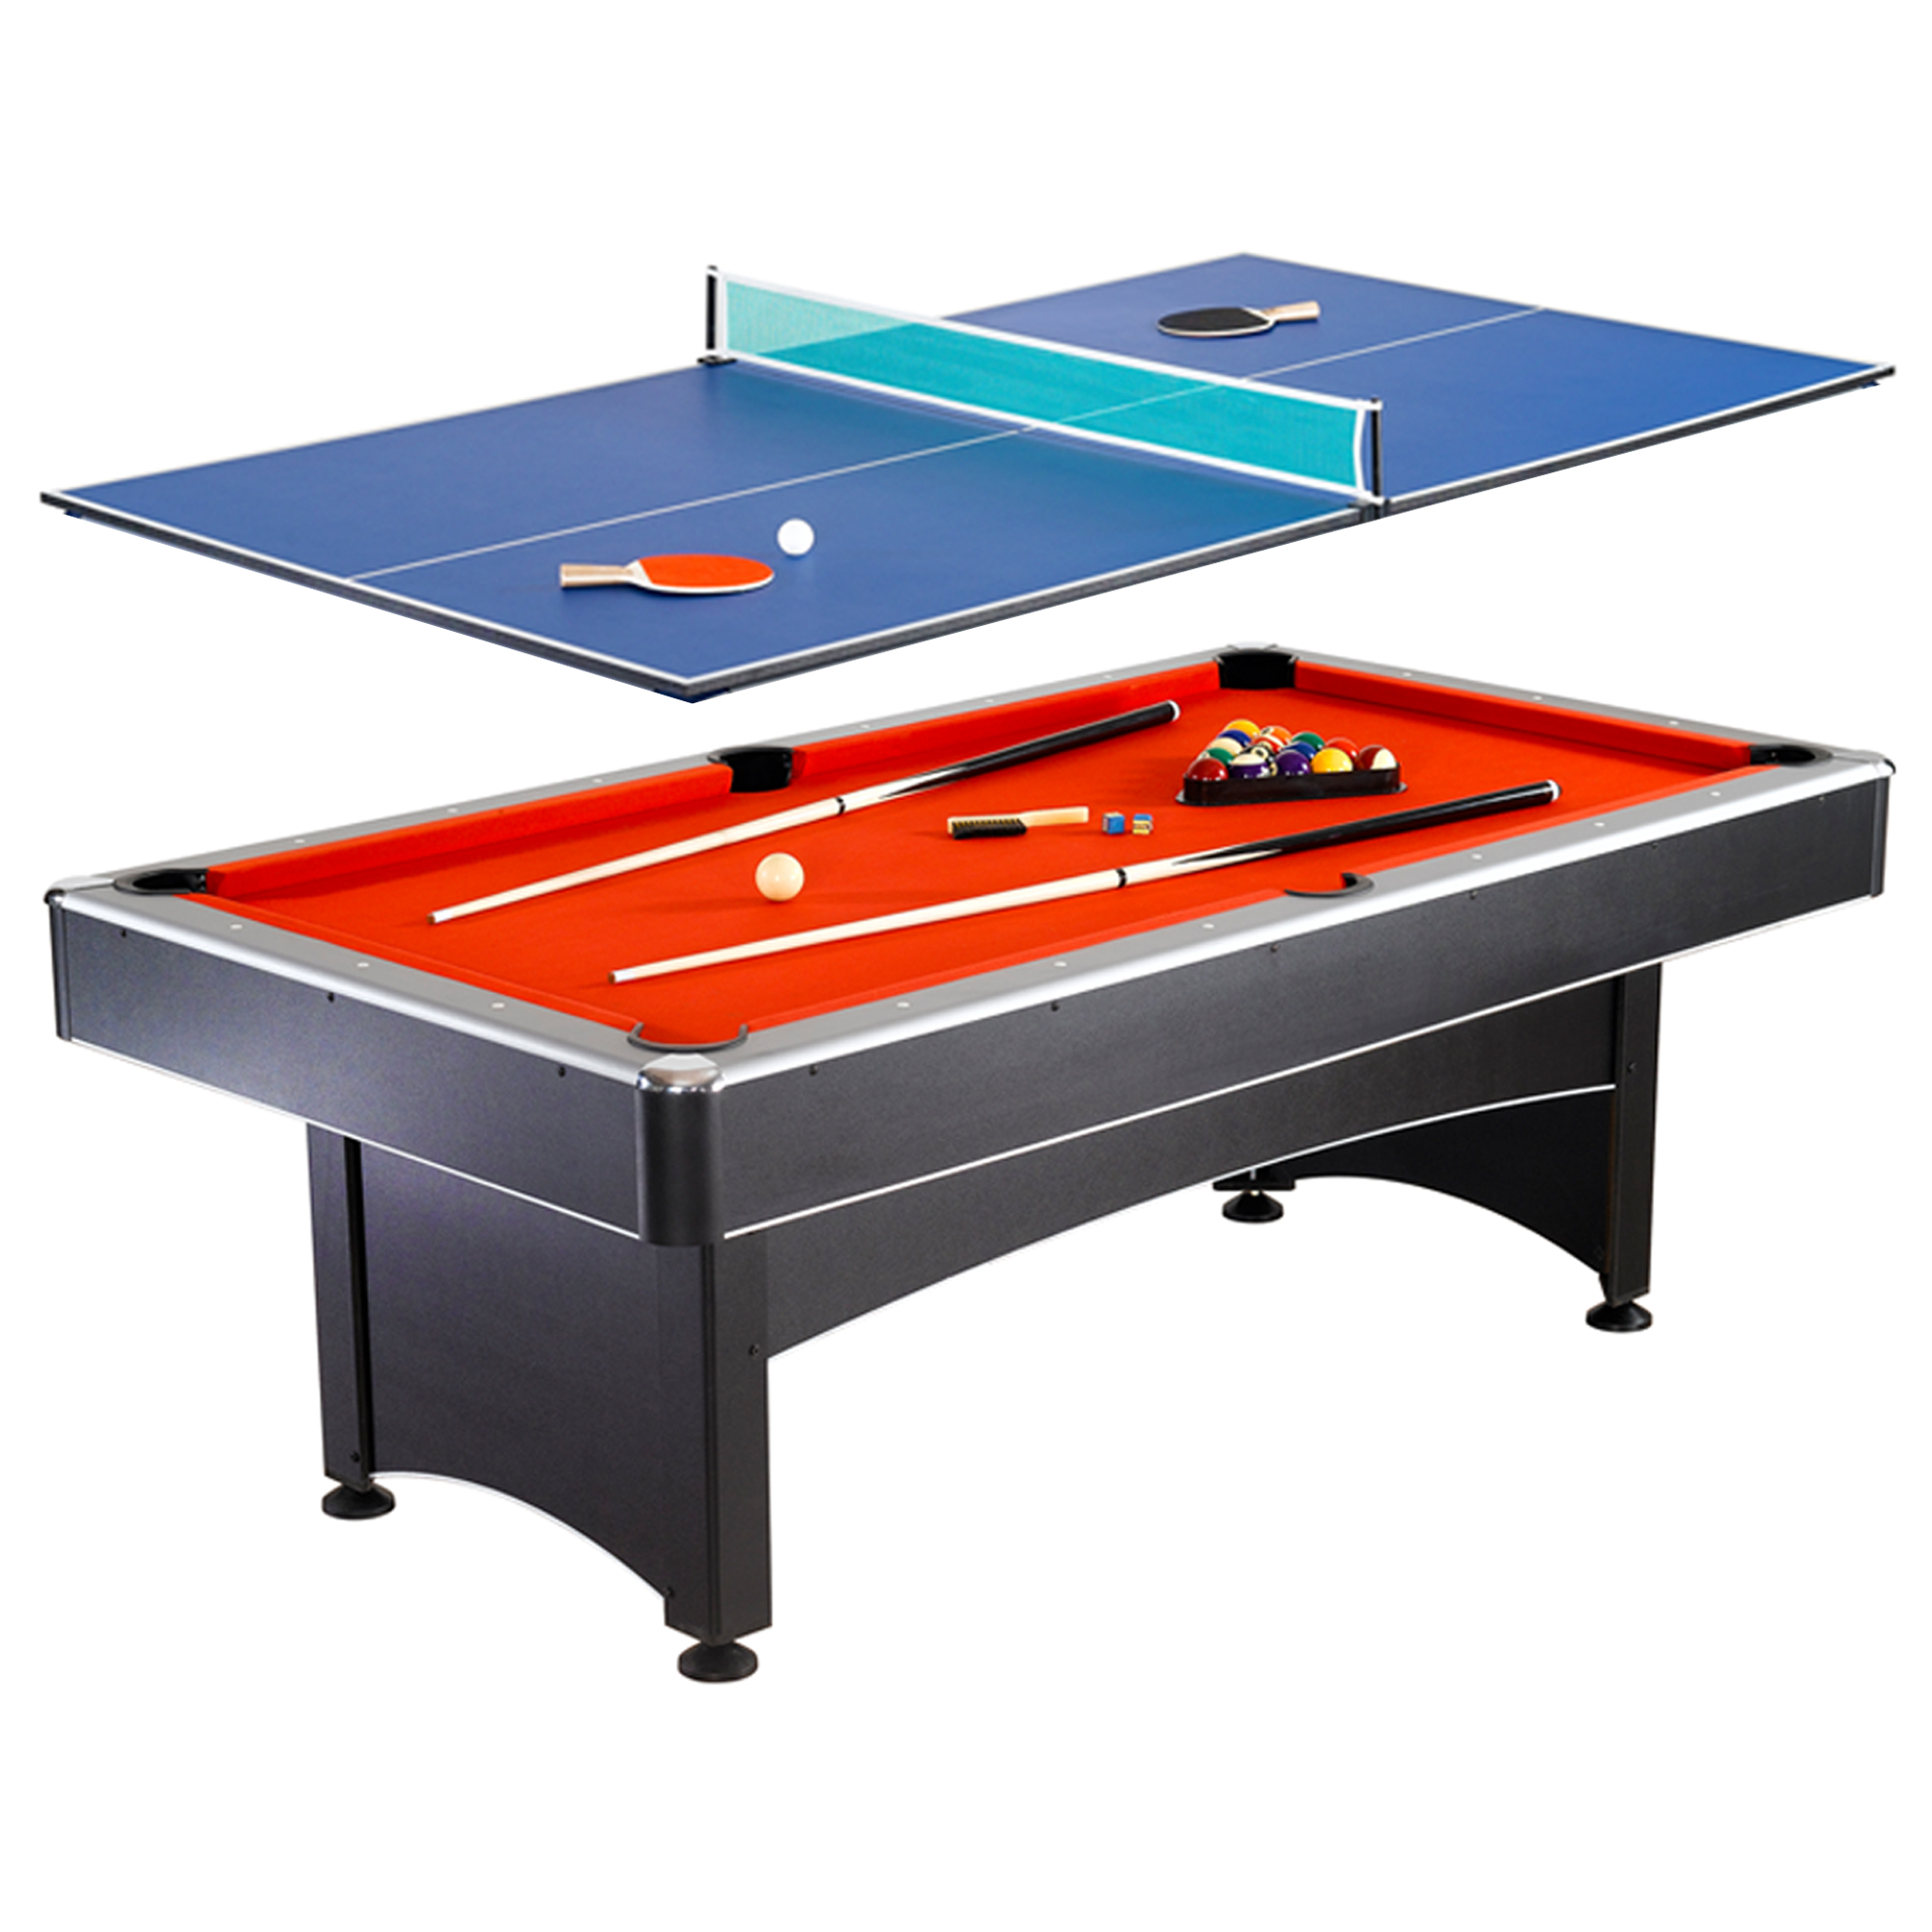 Hathaway Maverick 7 Ft Pool Table W/ Table Tennis